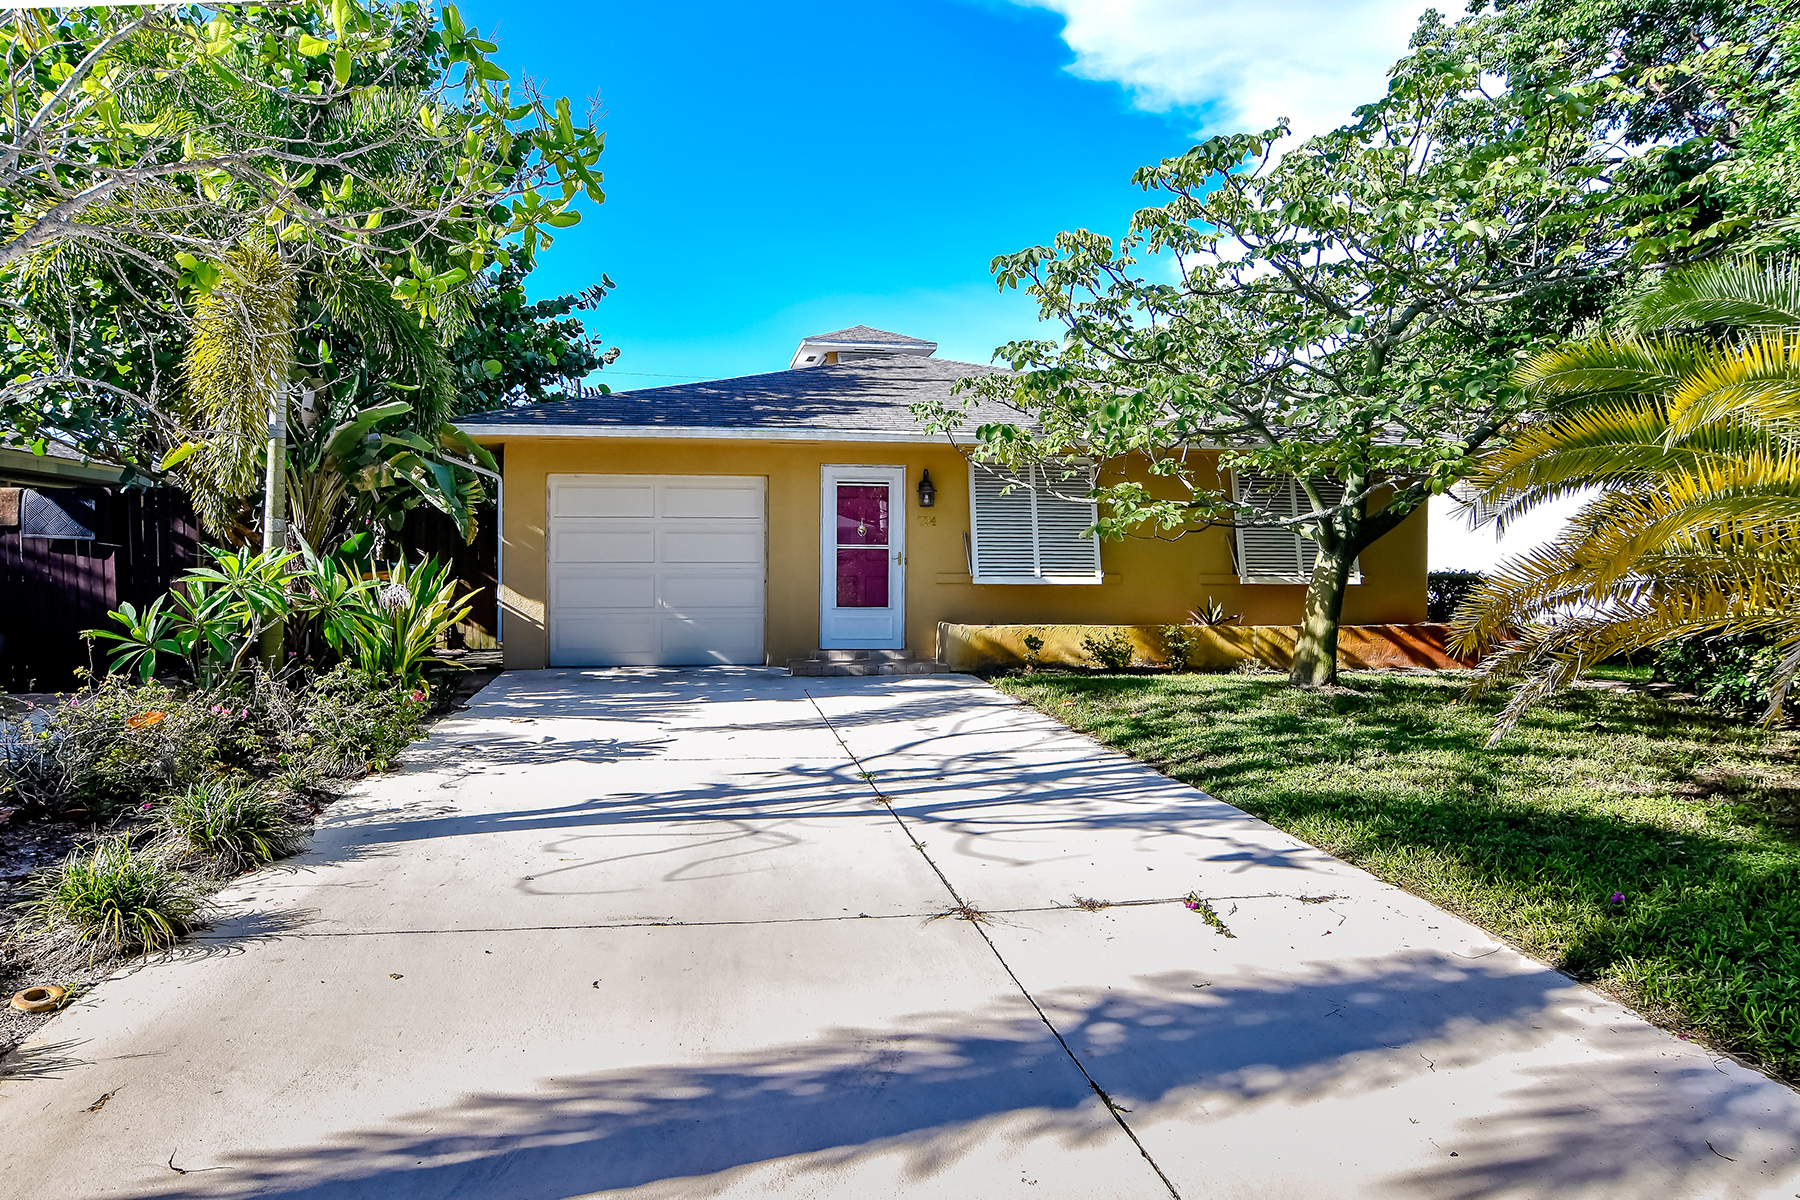 Single Family Home for Sale at NAPLES PARK-NAPLES PARK 724 94th Ave N Naples, Florida 34108 United States